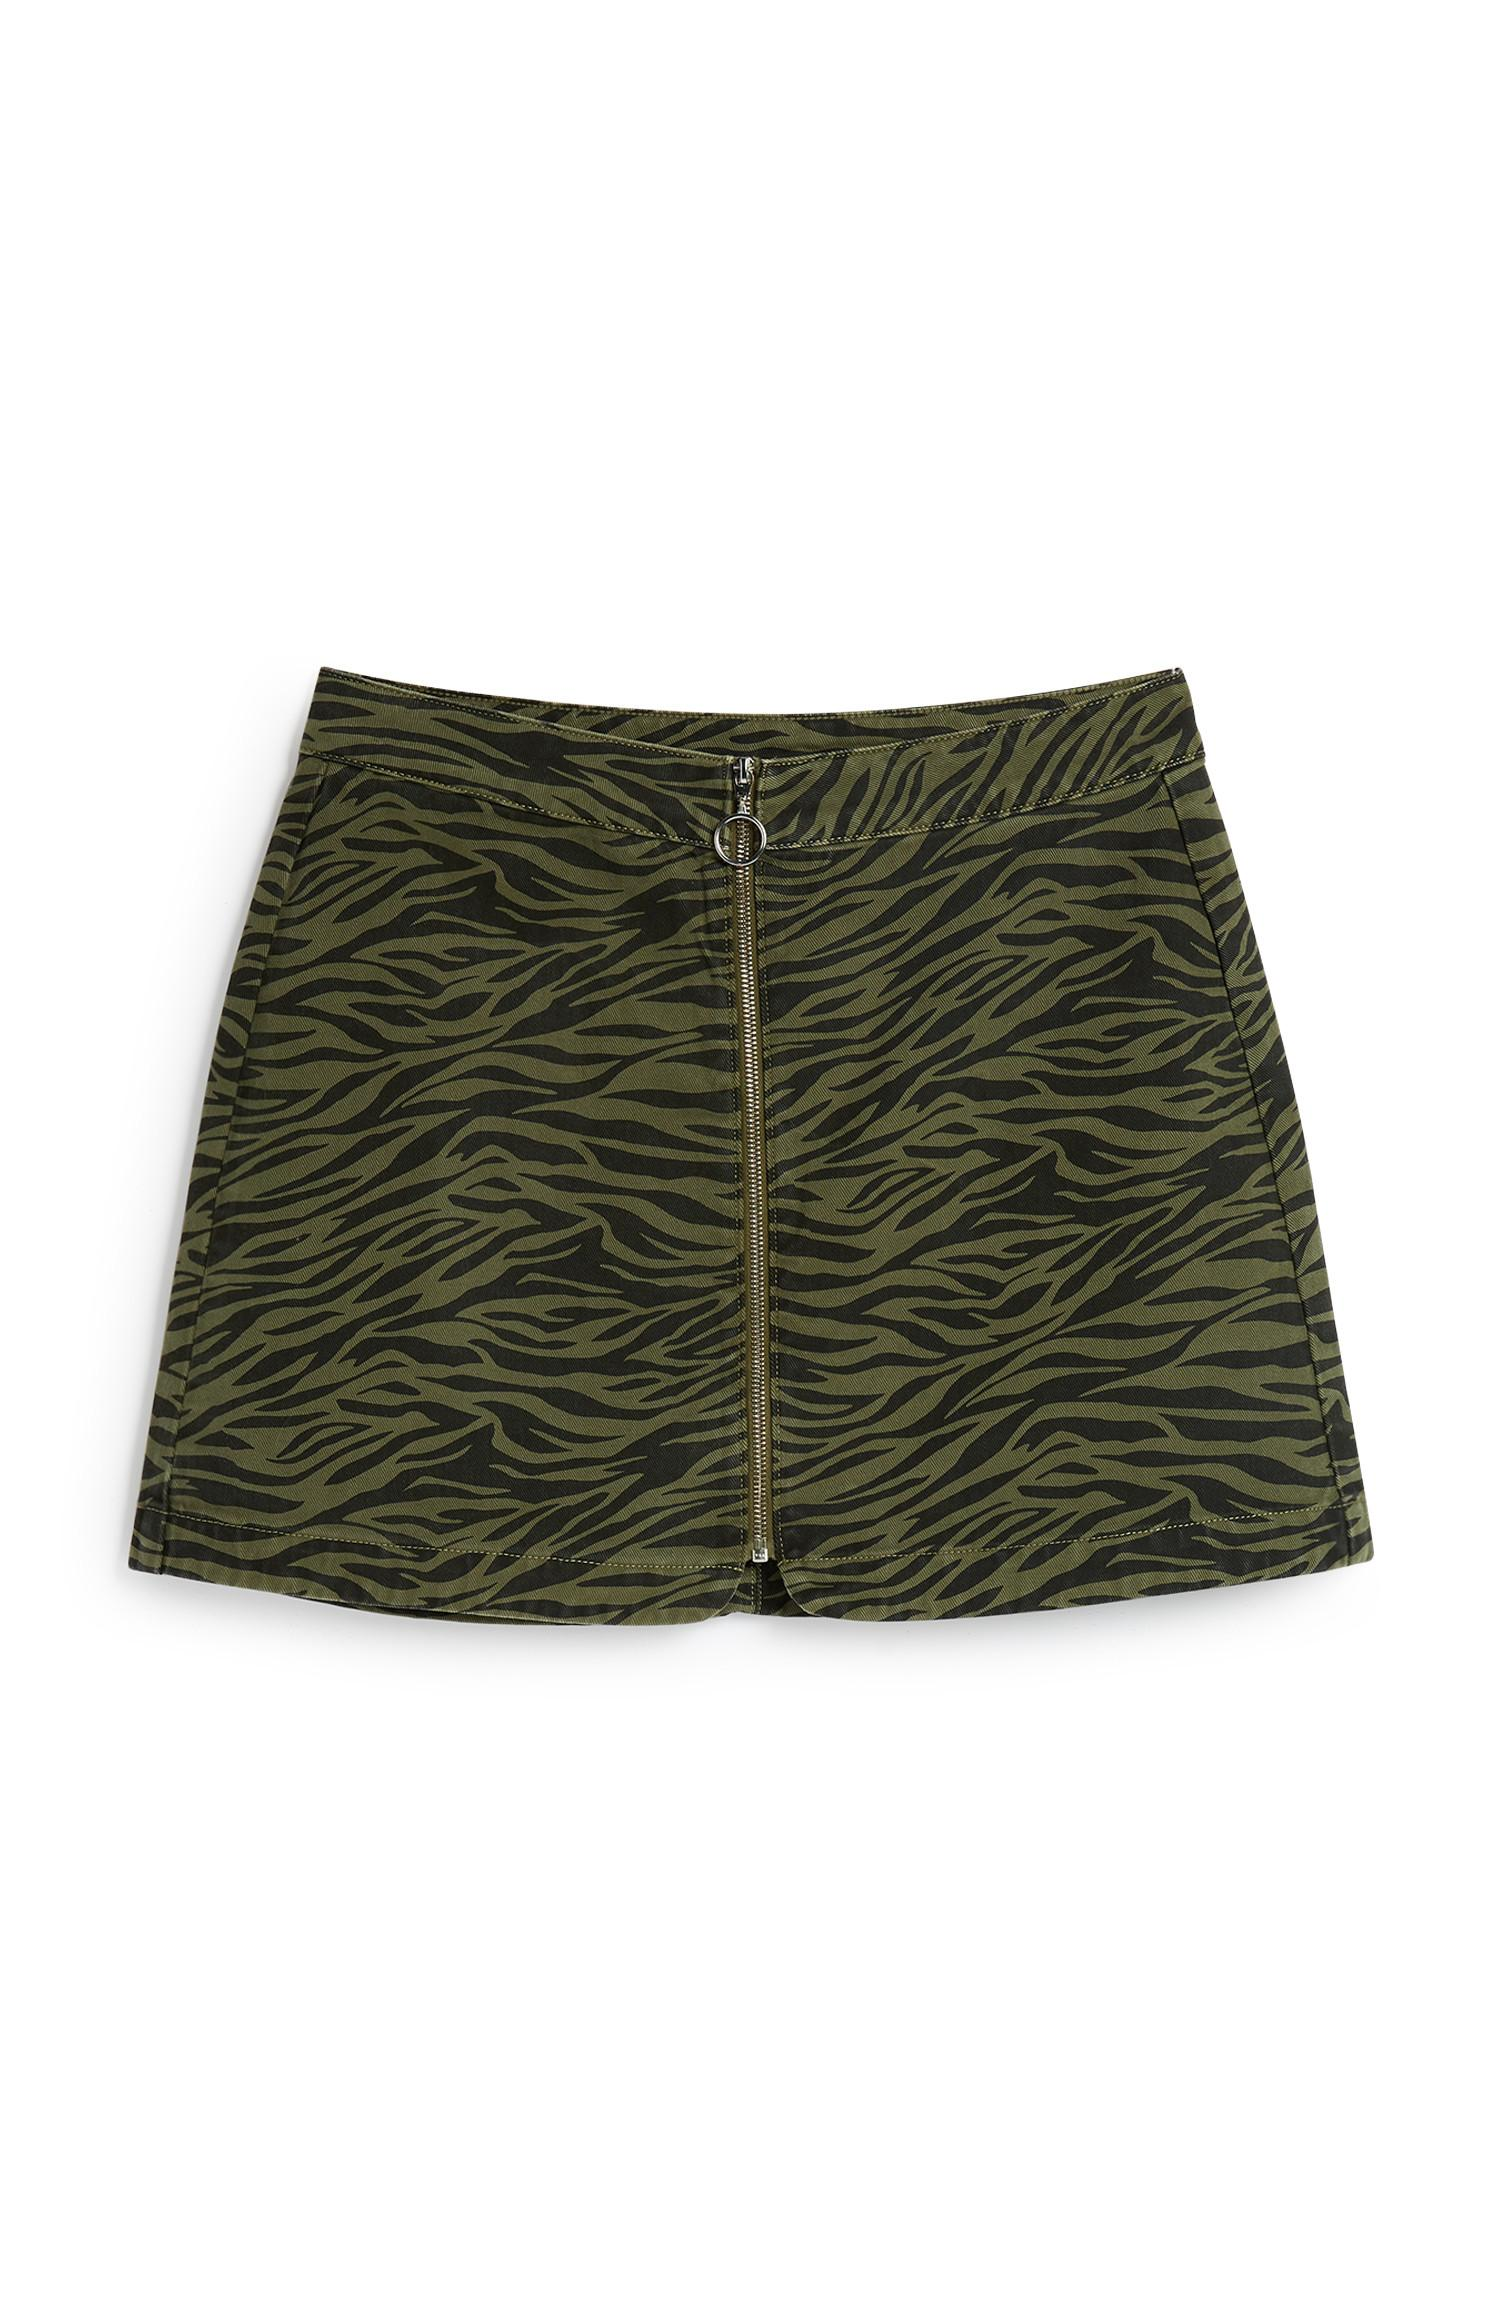 Green Zebra Print Skirt